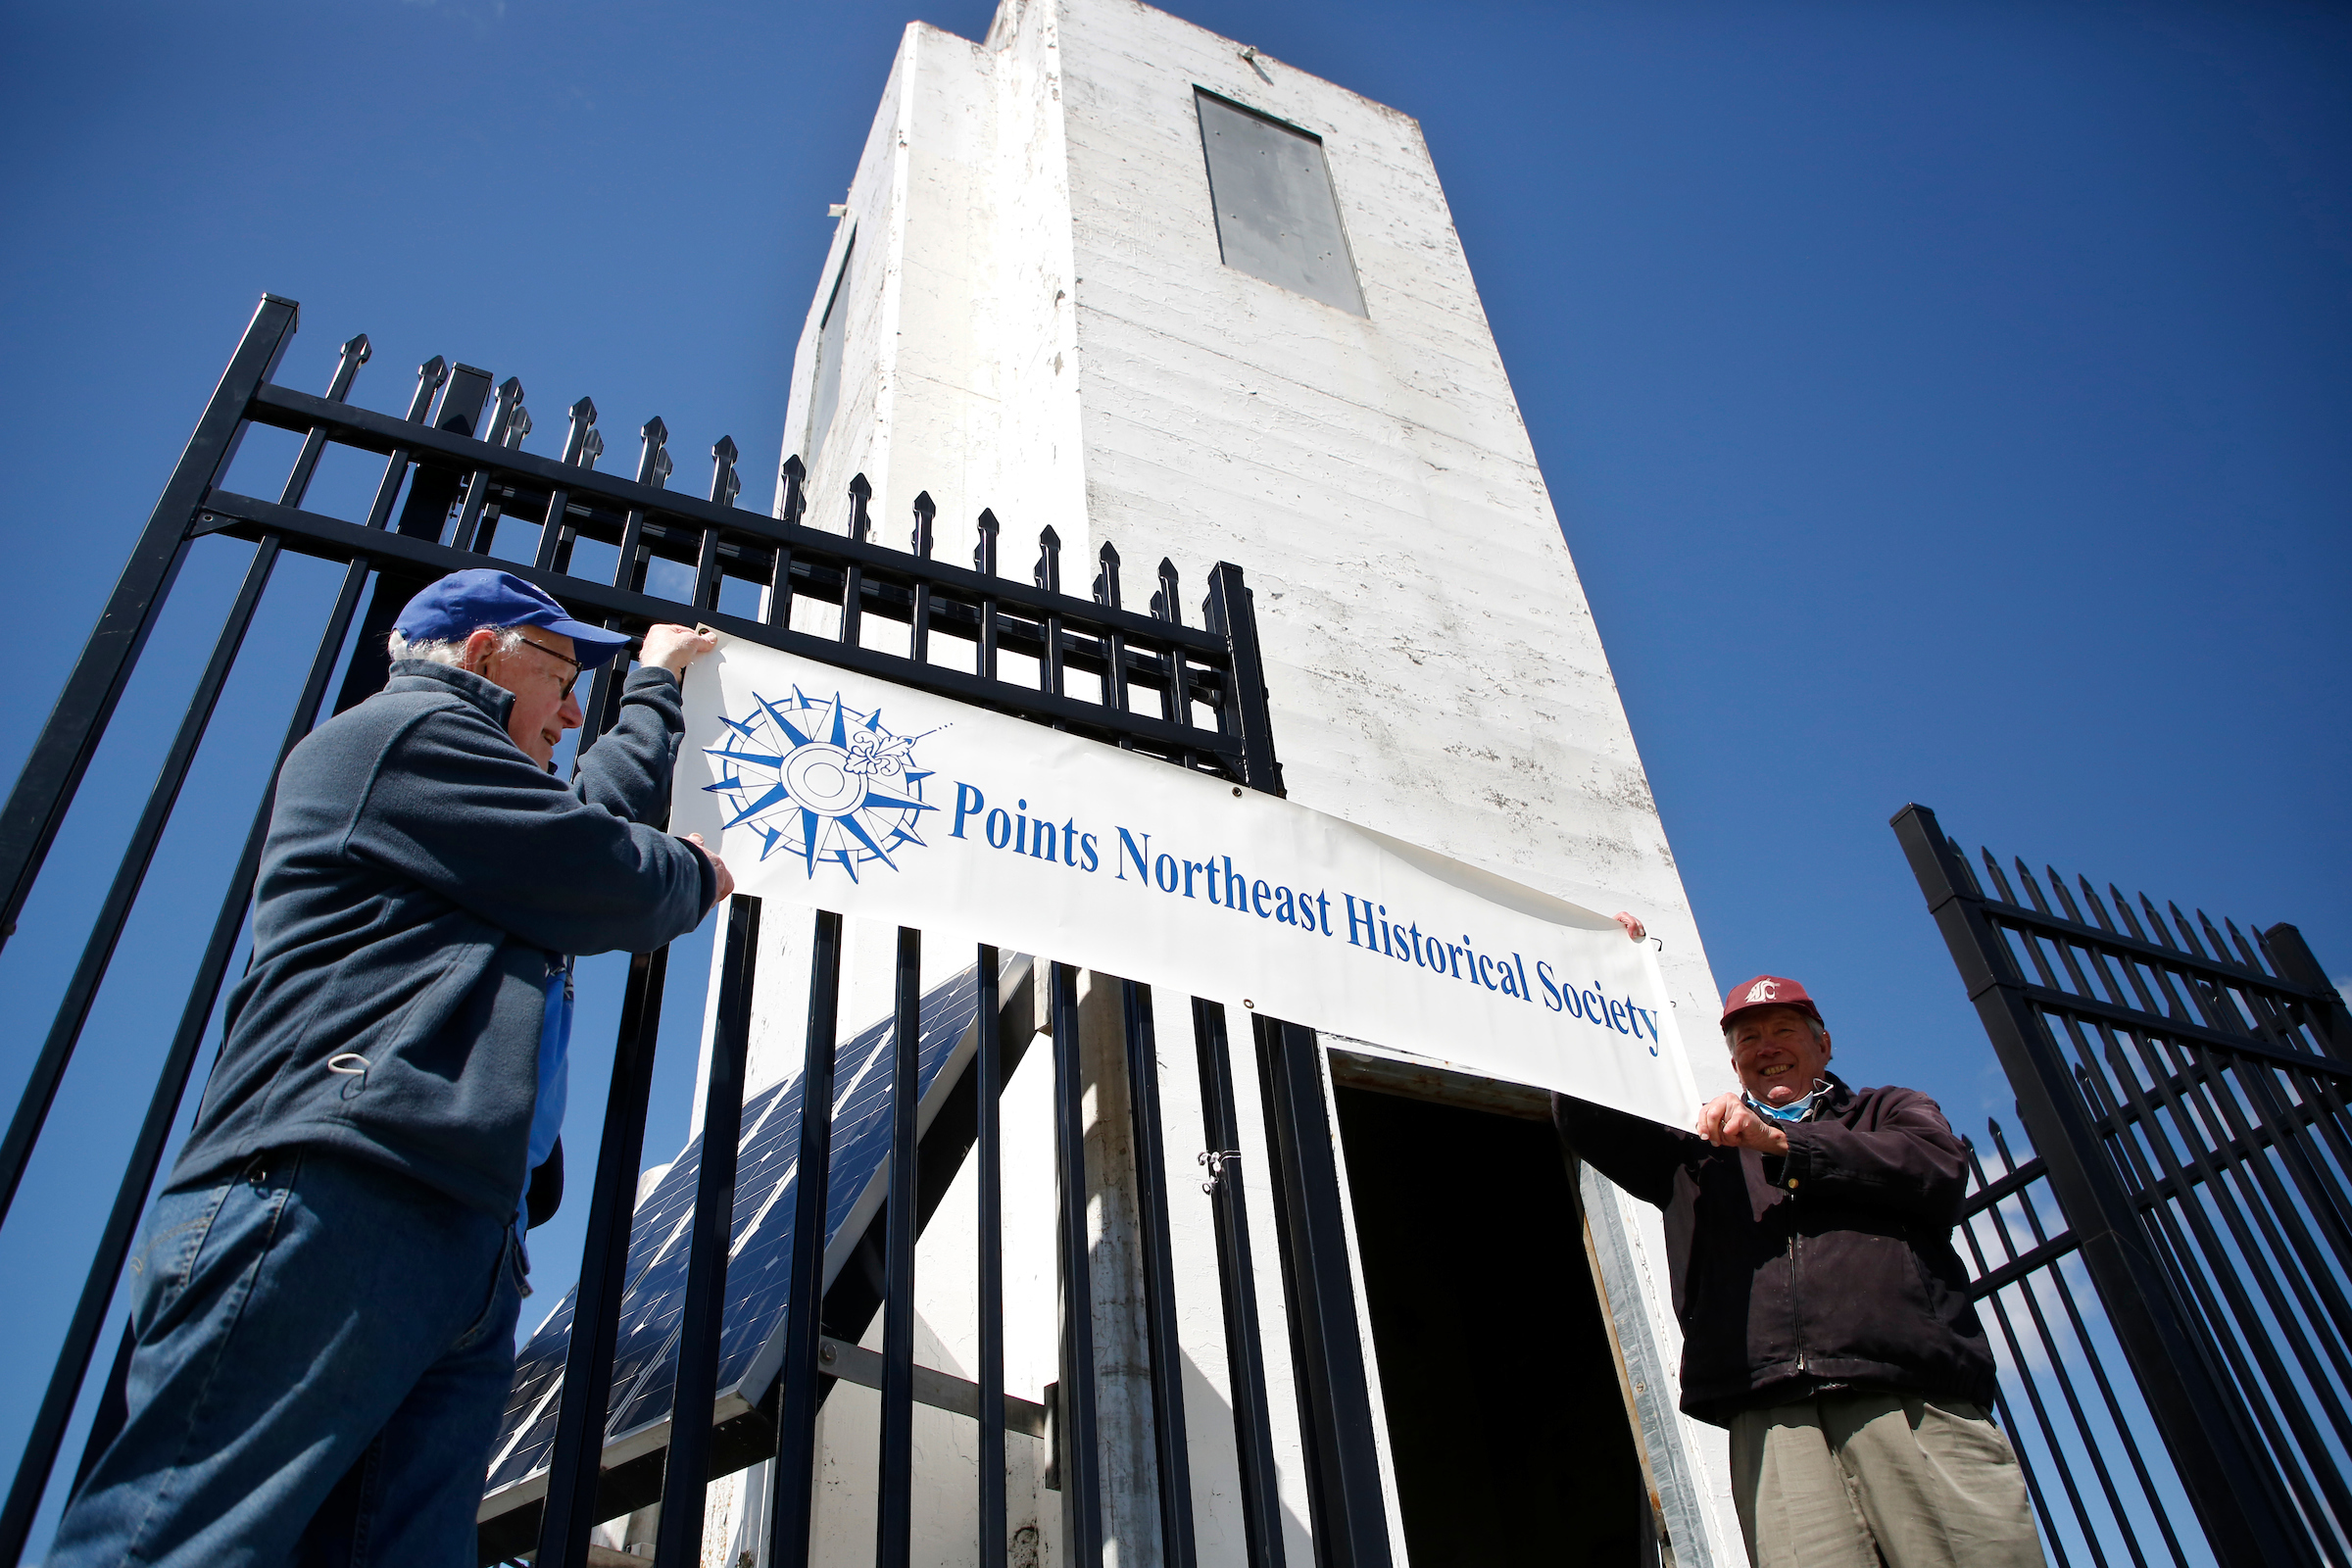 photo of men holding a sign in front of lighthouse